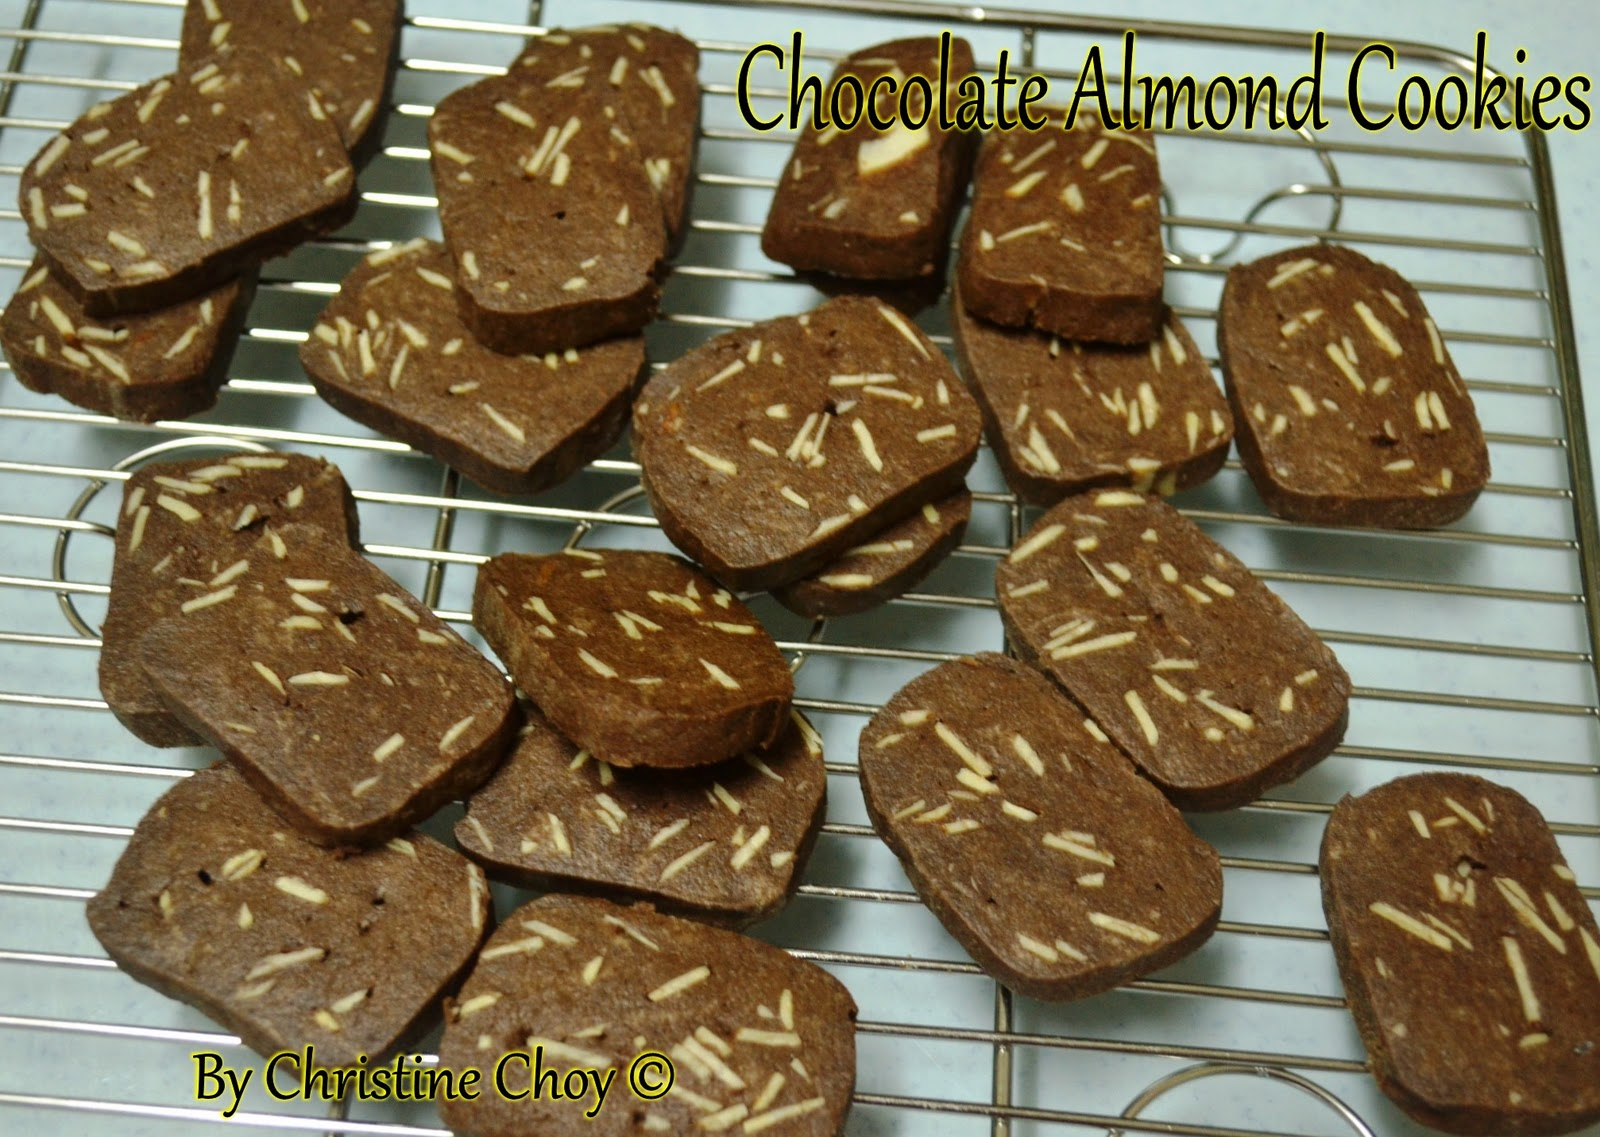 Food@Home Sweet Home: Chocolate Almond Cookies